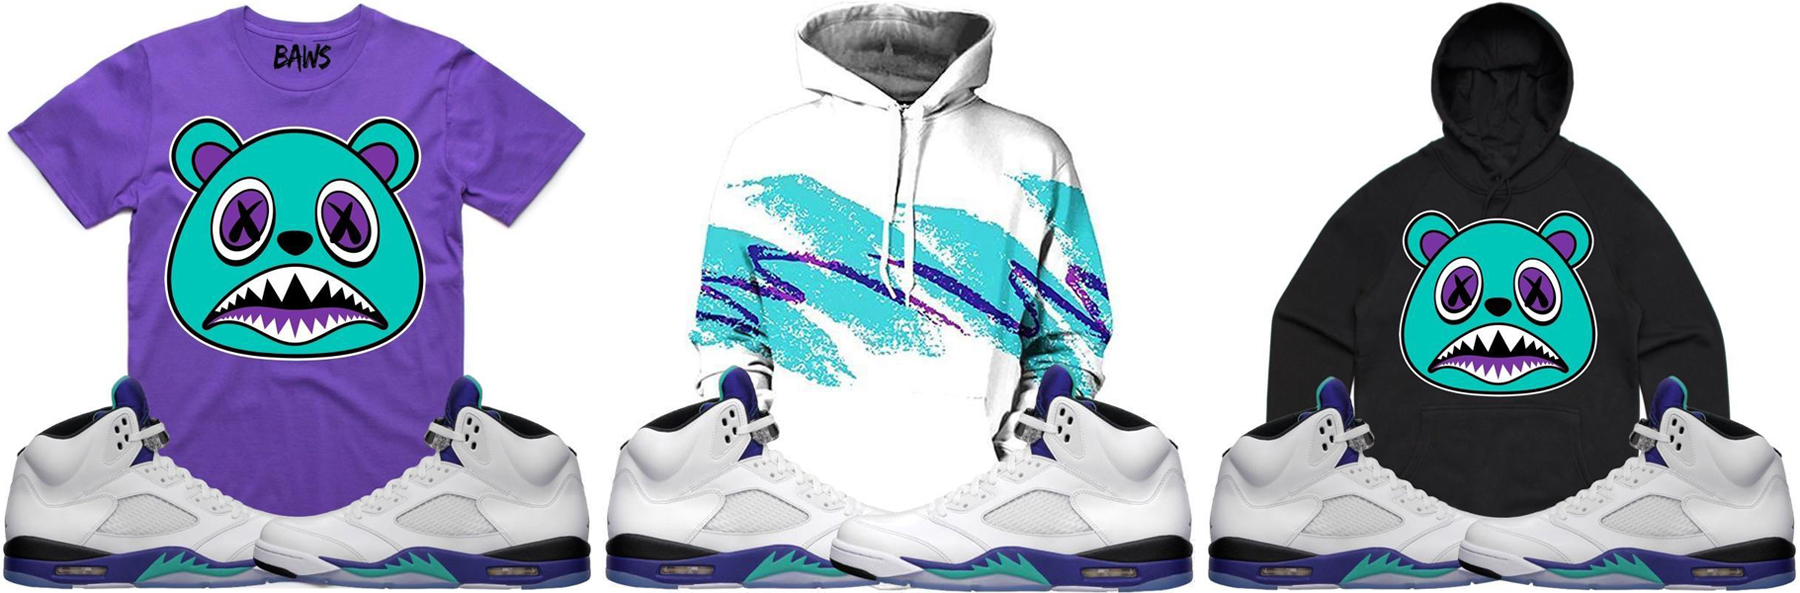 jordan-5-fresh-prince-grape-sneaker-match-baws-clothing